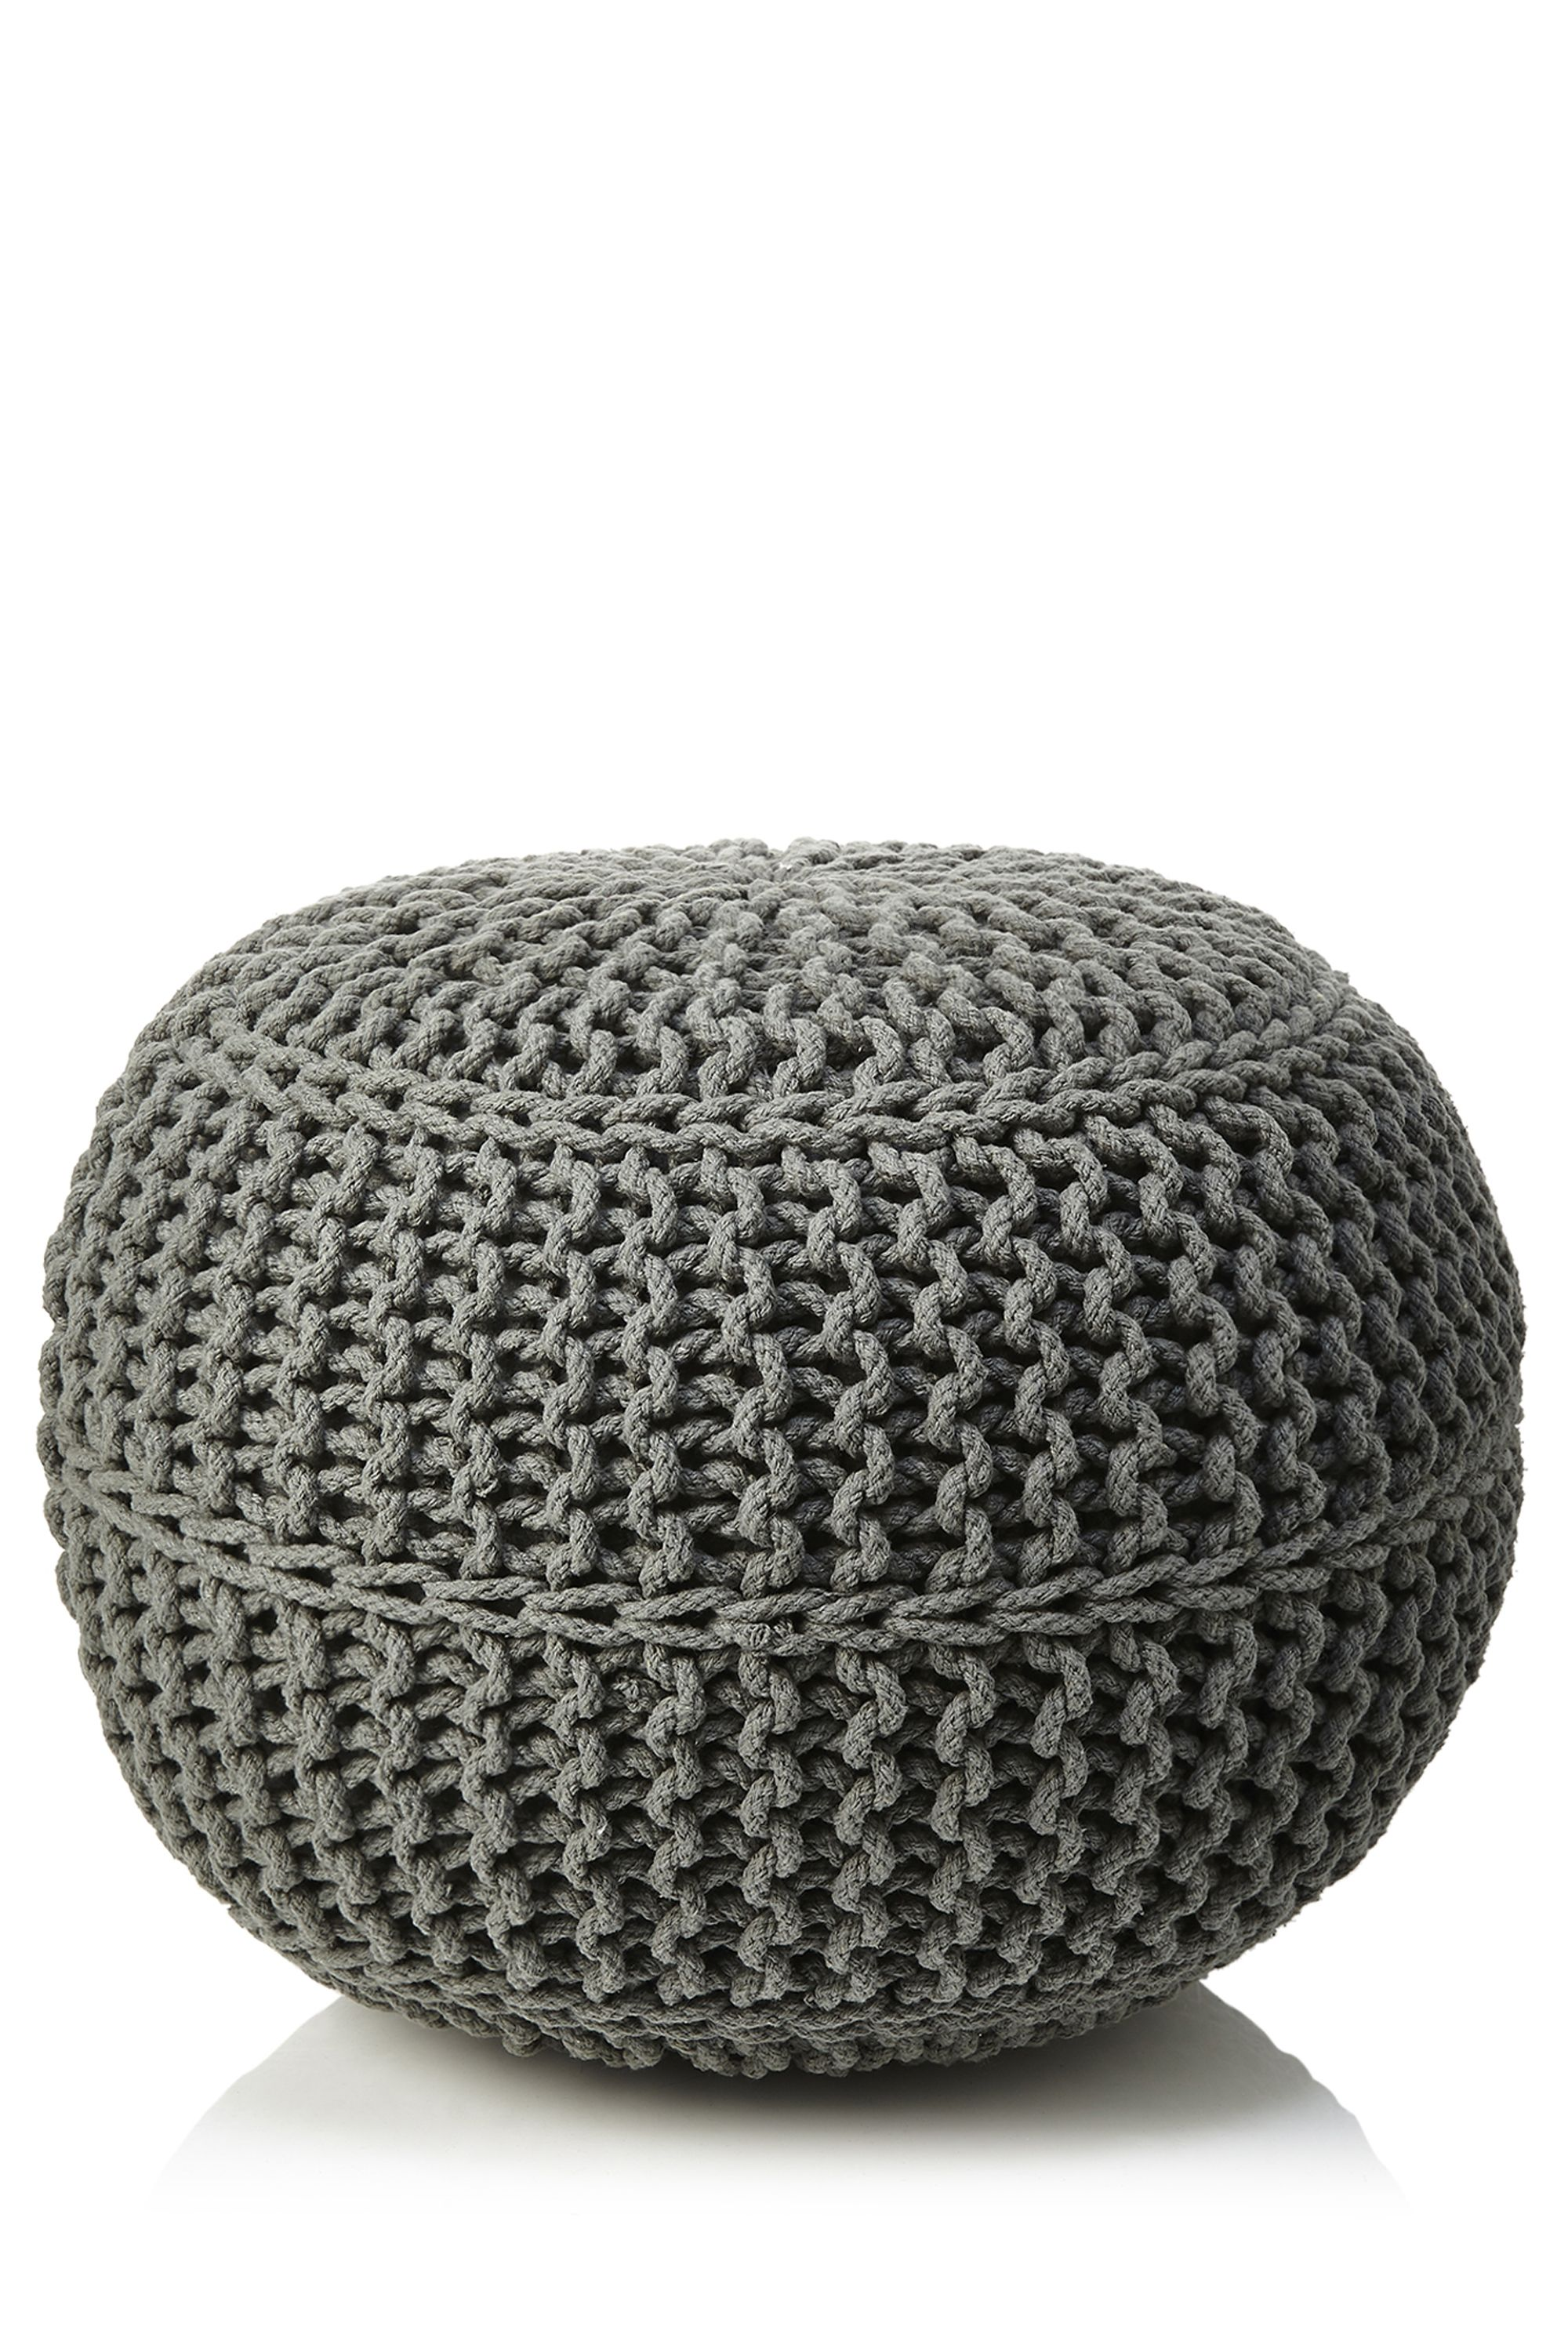 Knitted Pouffe, Grey | Rugs & Pouffes | Home Furnishings | Homeware | Categories | BHS